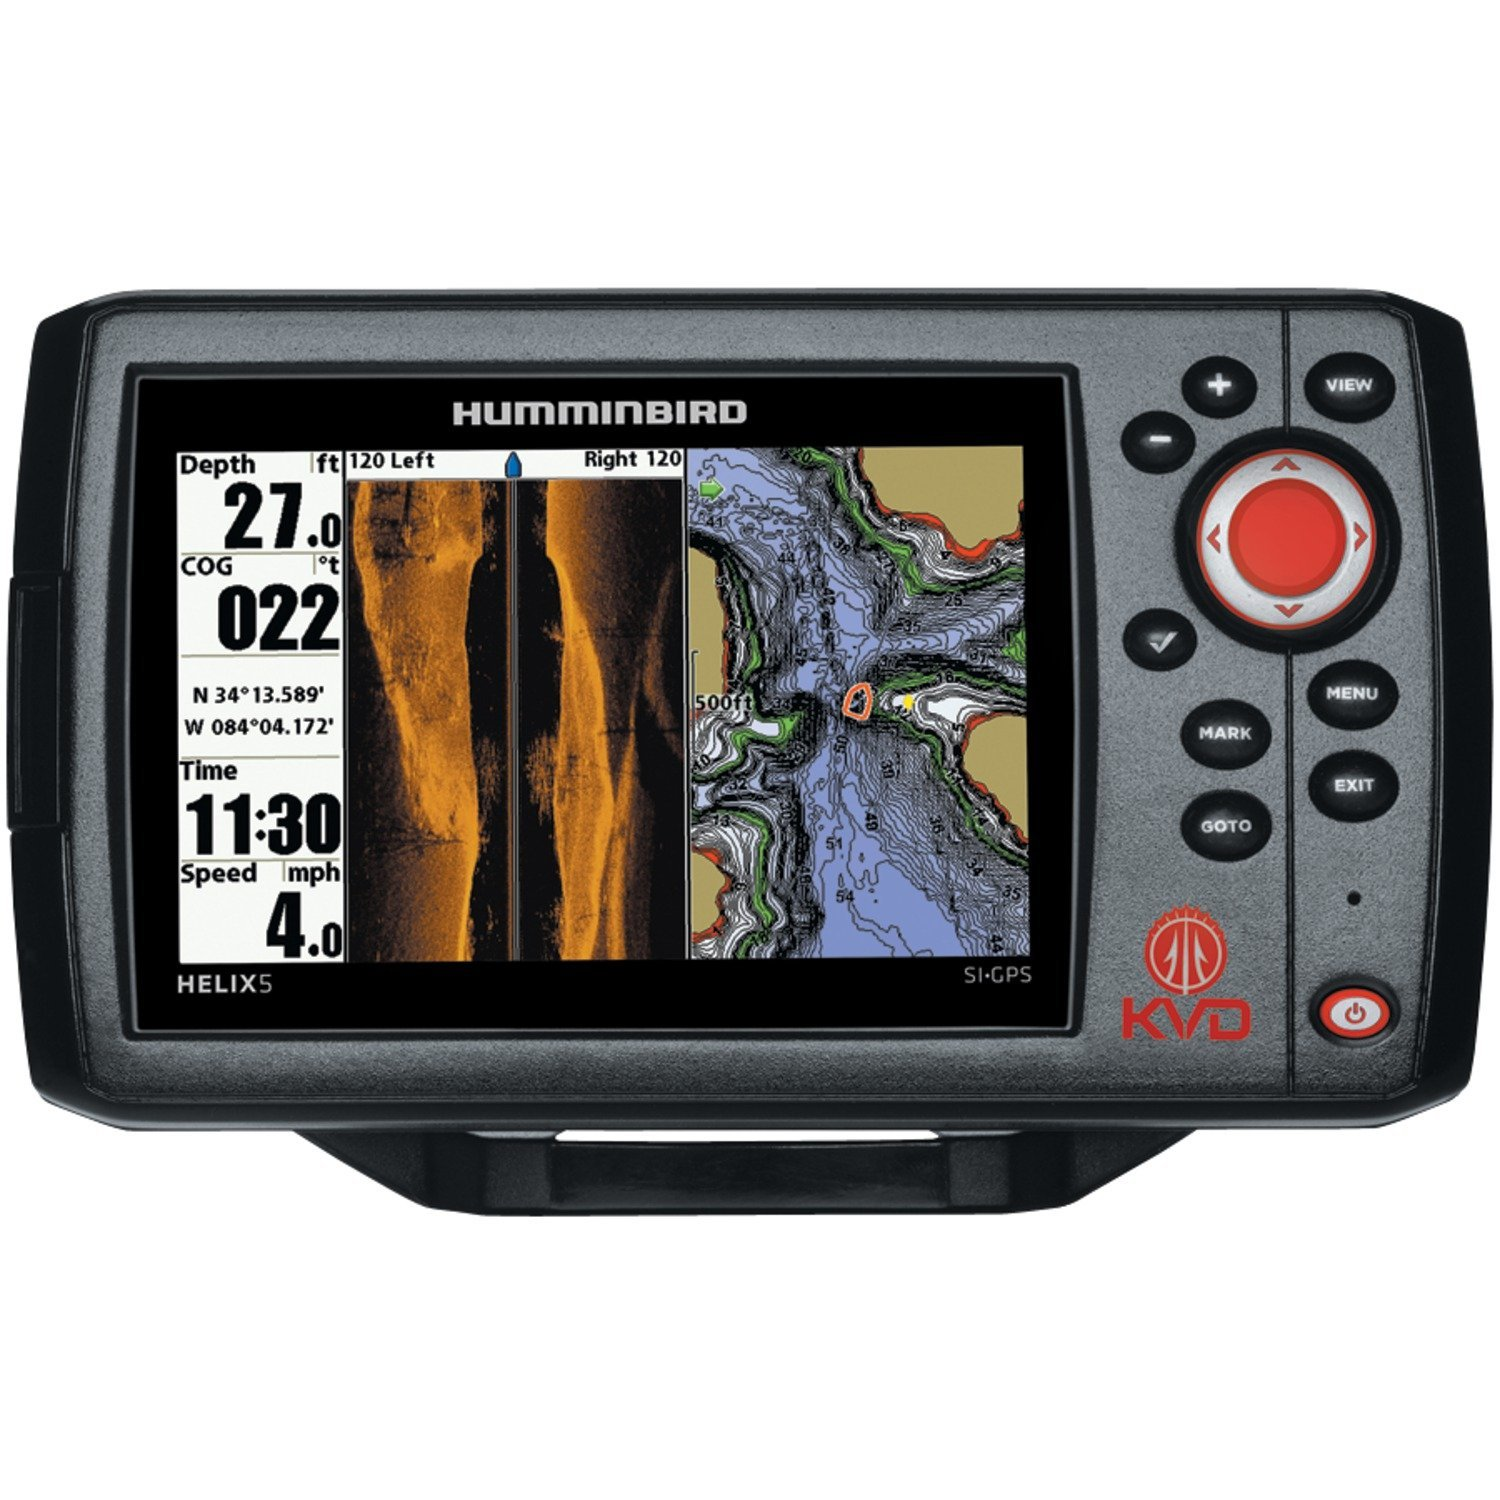 Humminbird 409640-1 HELIX 5 SI Fish Finder with Side Imaging and GPS